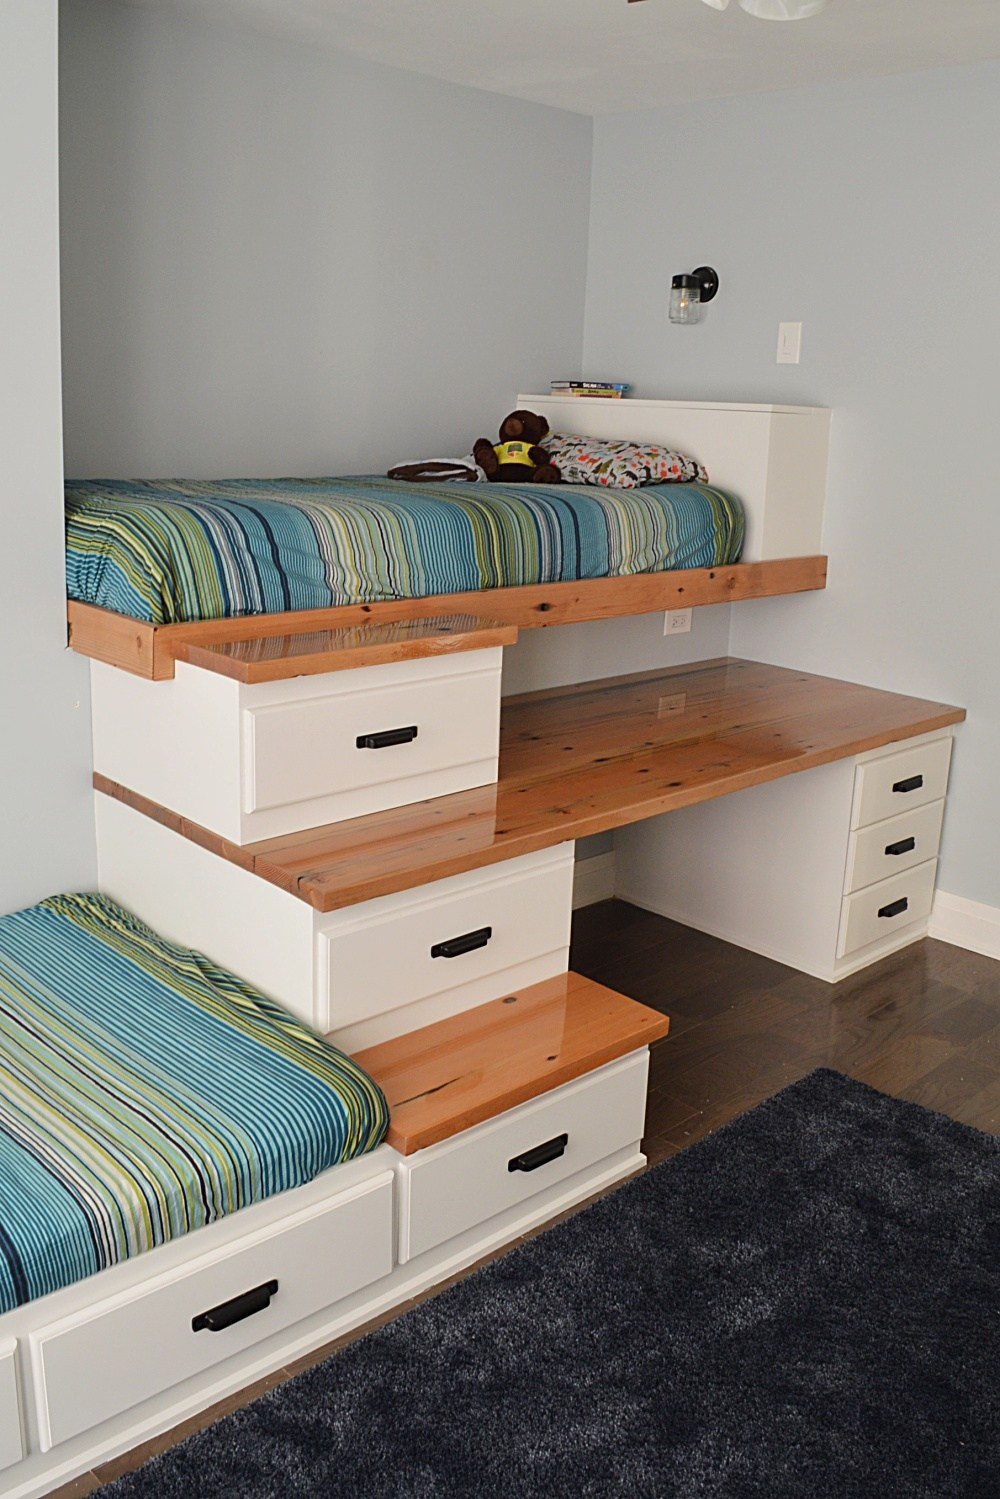 Built in loft bed with drawers and desk